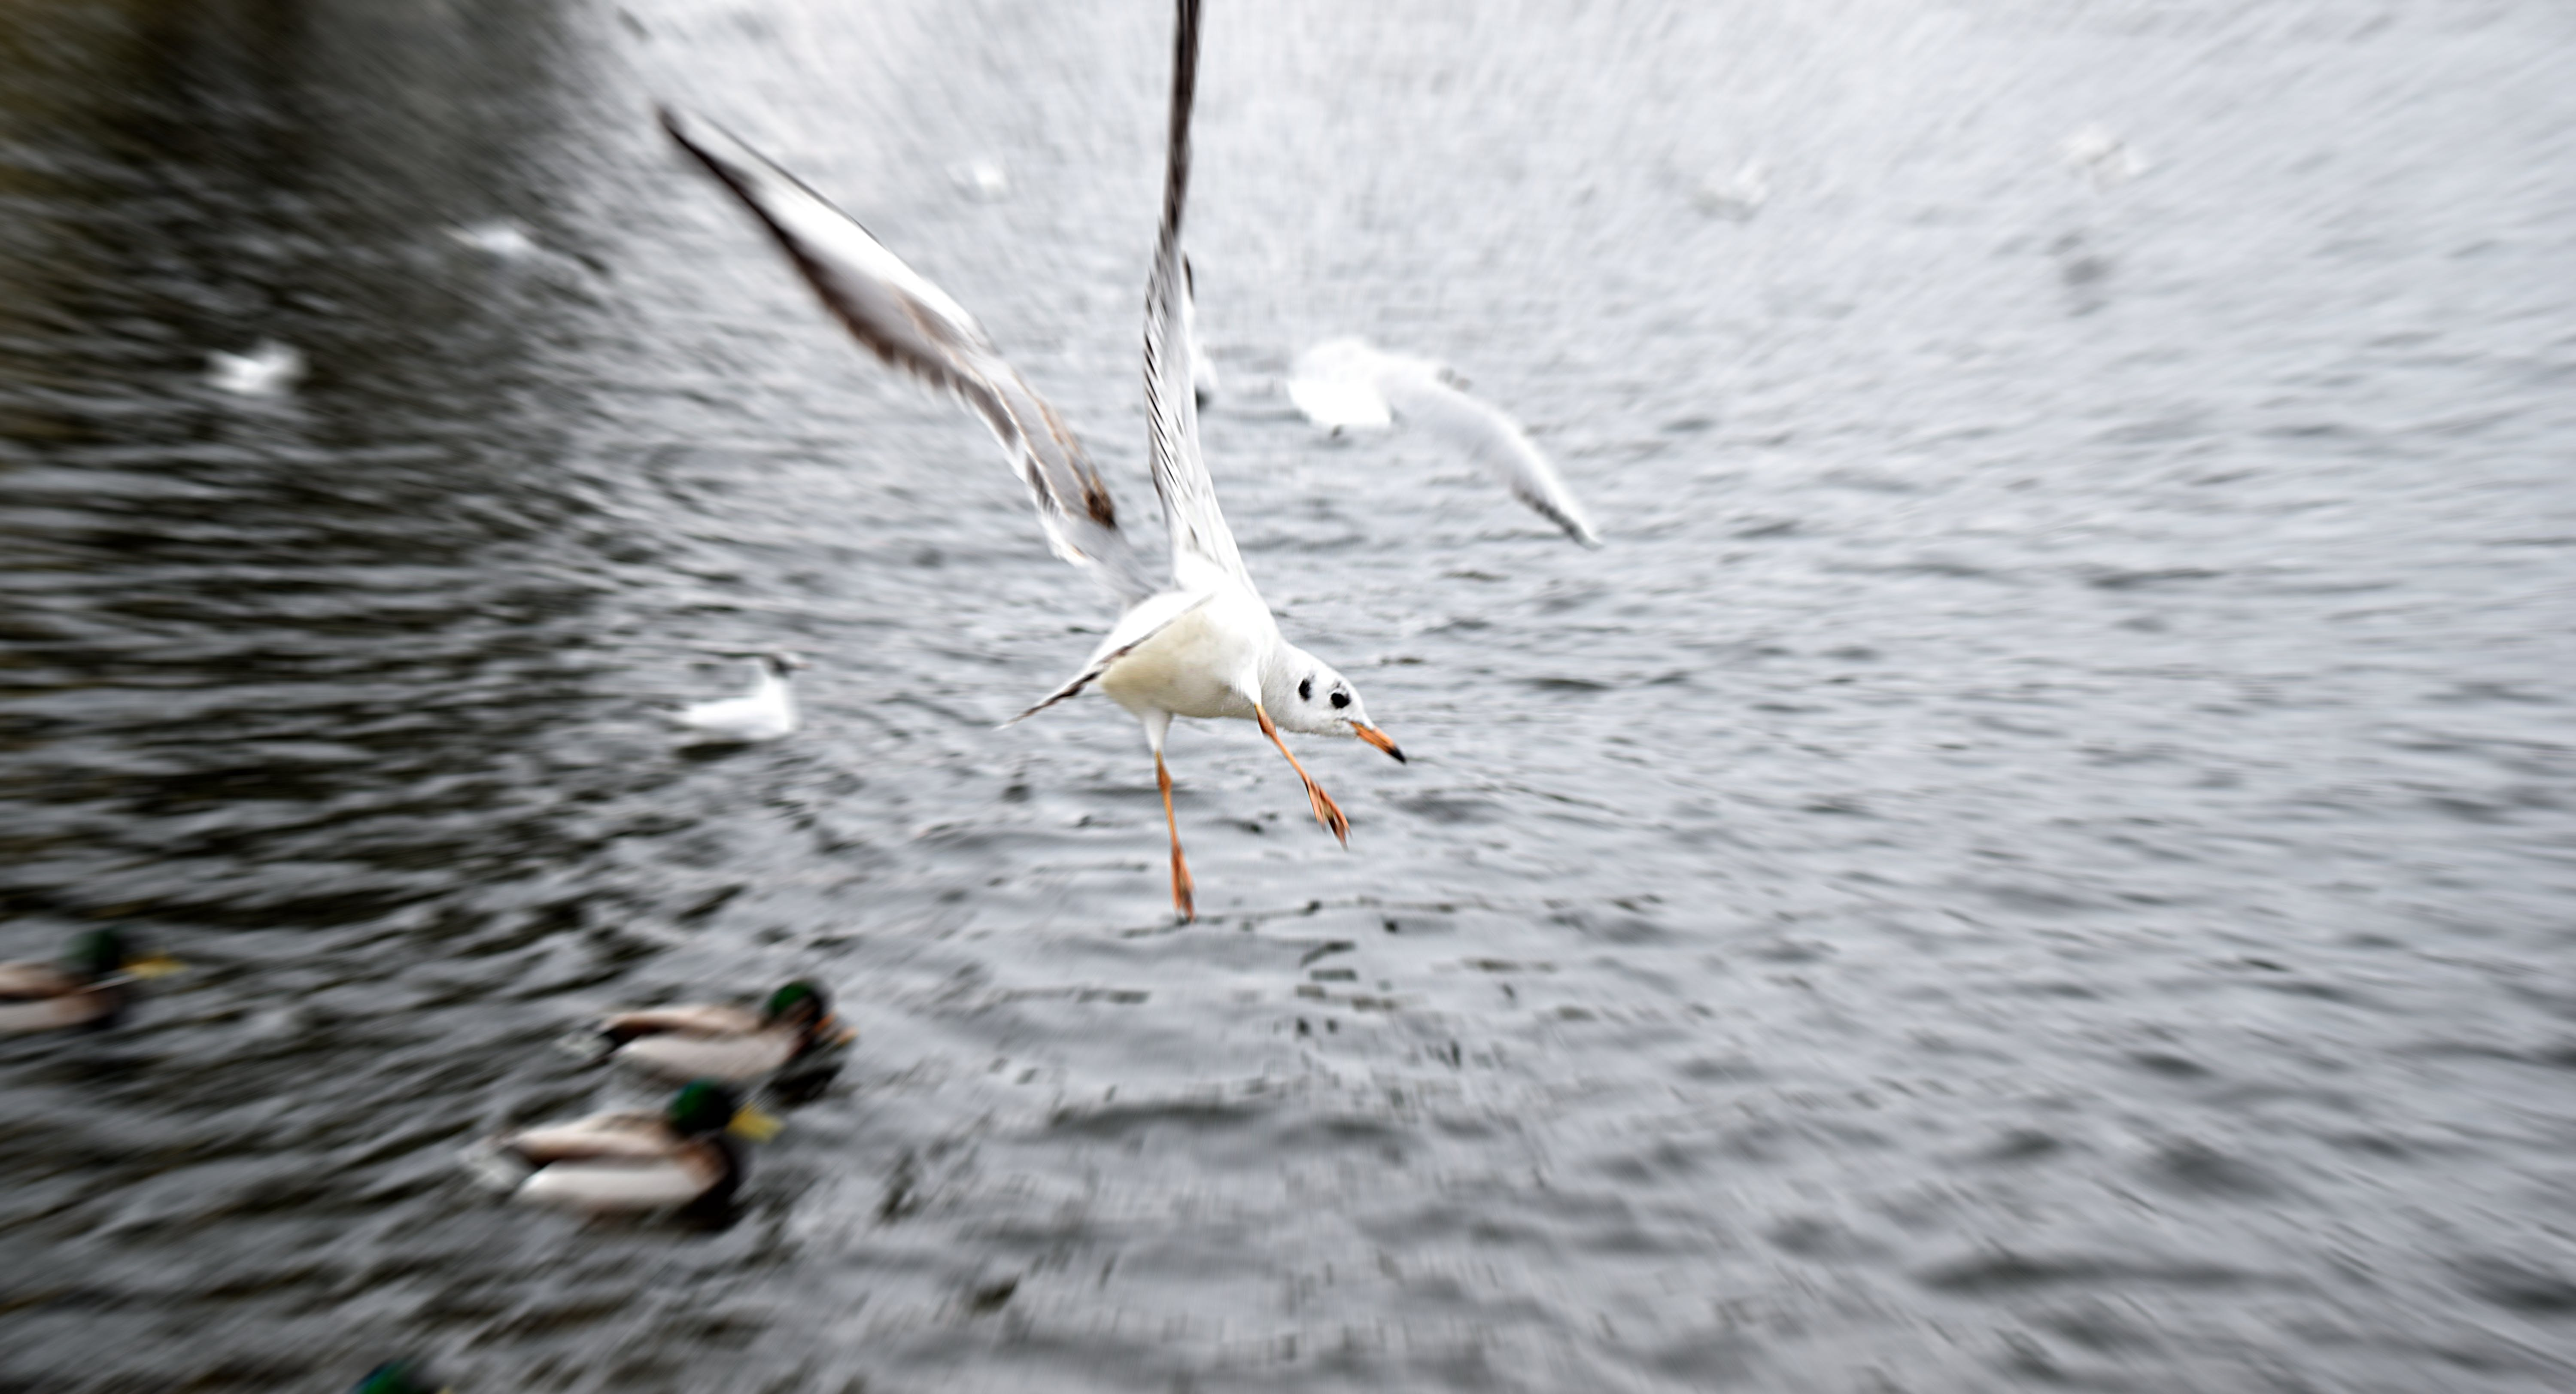 Birds Flying on Body of Water during Daytime